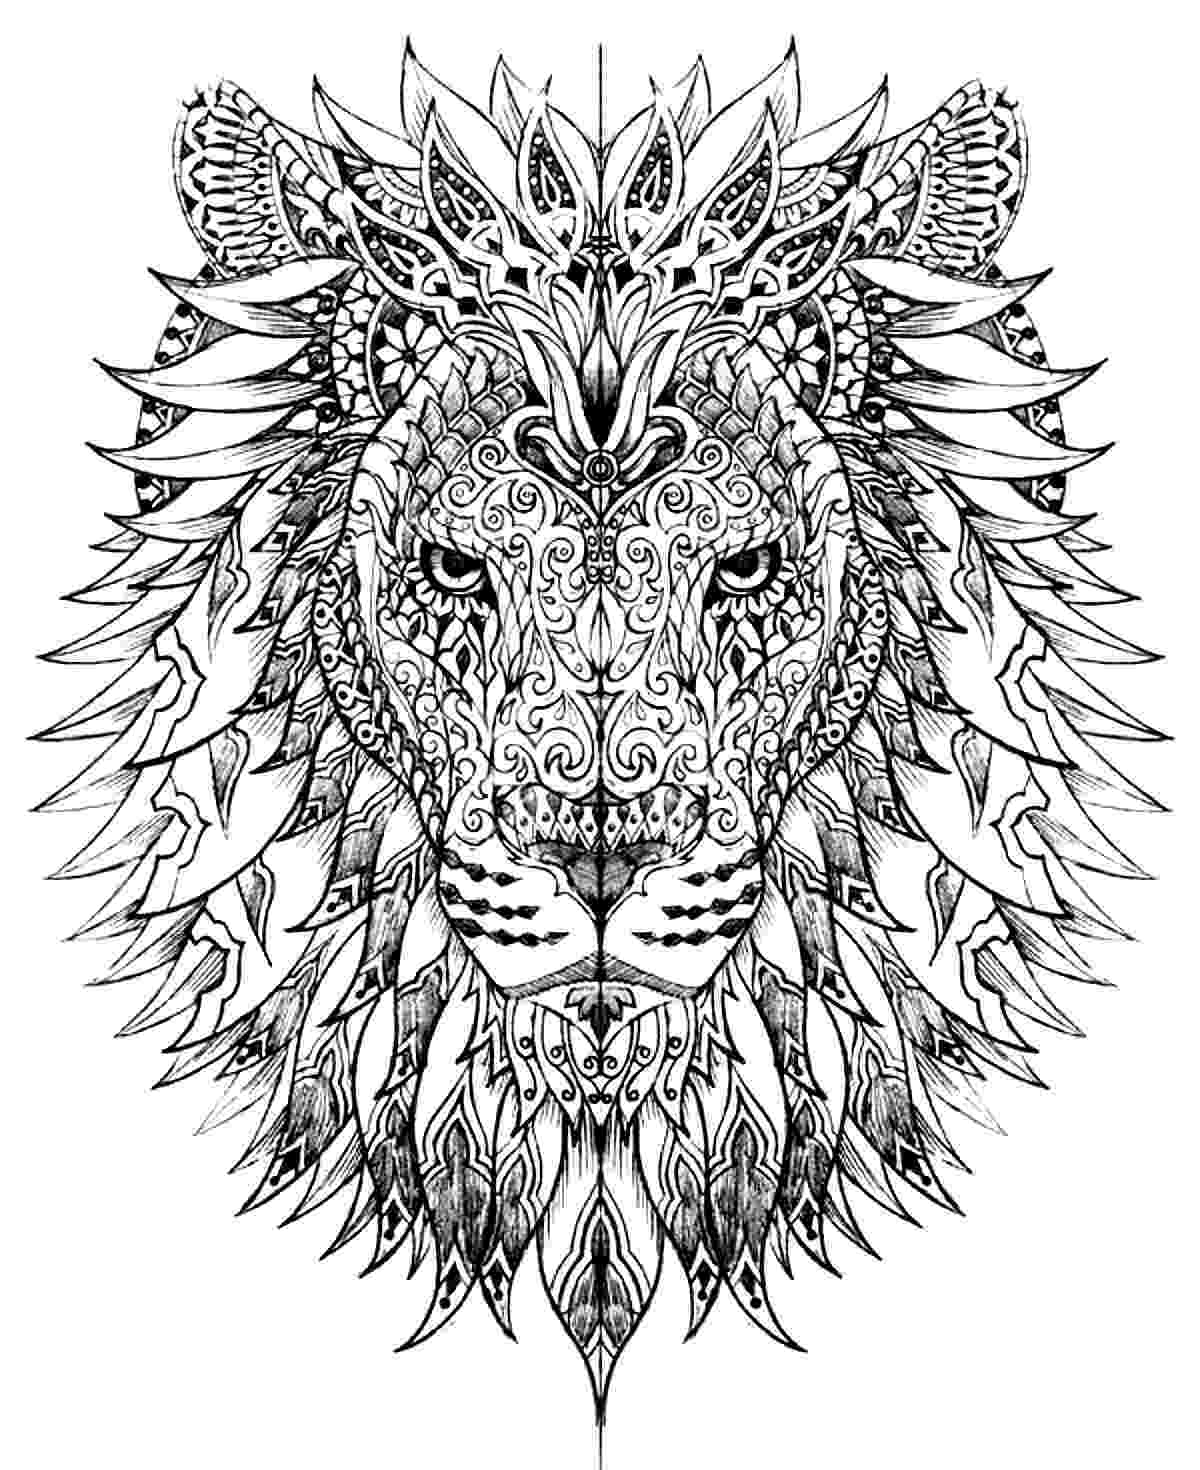 printable difficult coloring pages printable difficult coloring pages coloring home pages difficult coloring printable